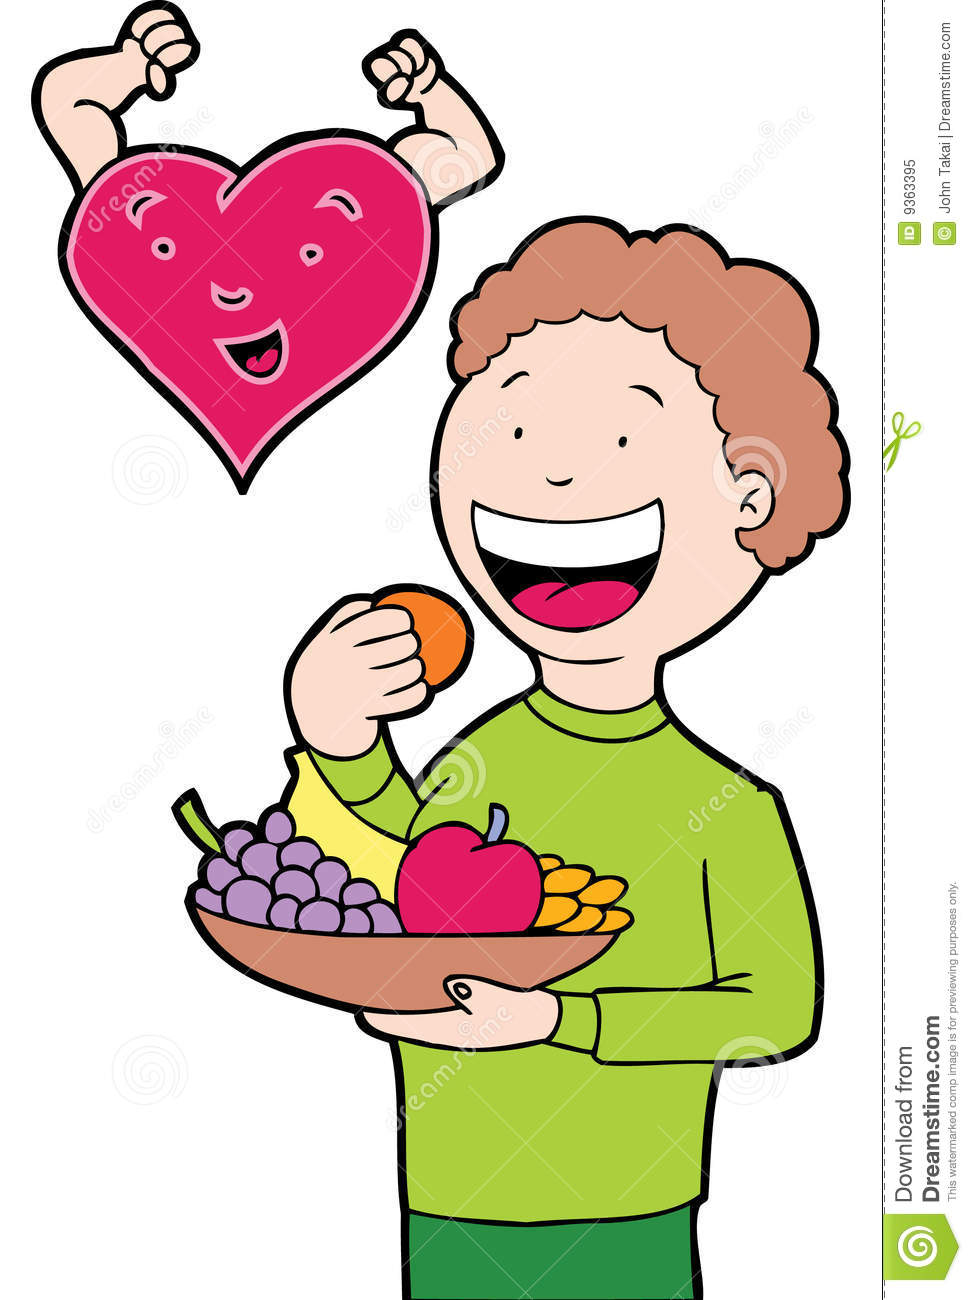 Healthy clipart 8 » Clipart Station.